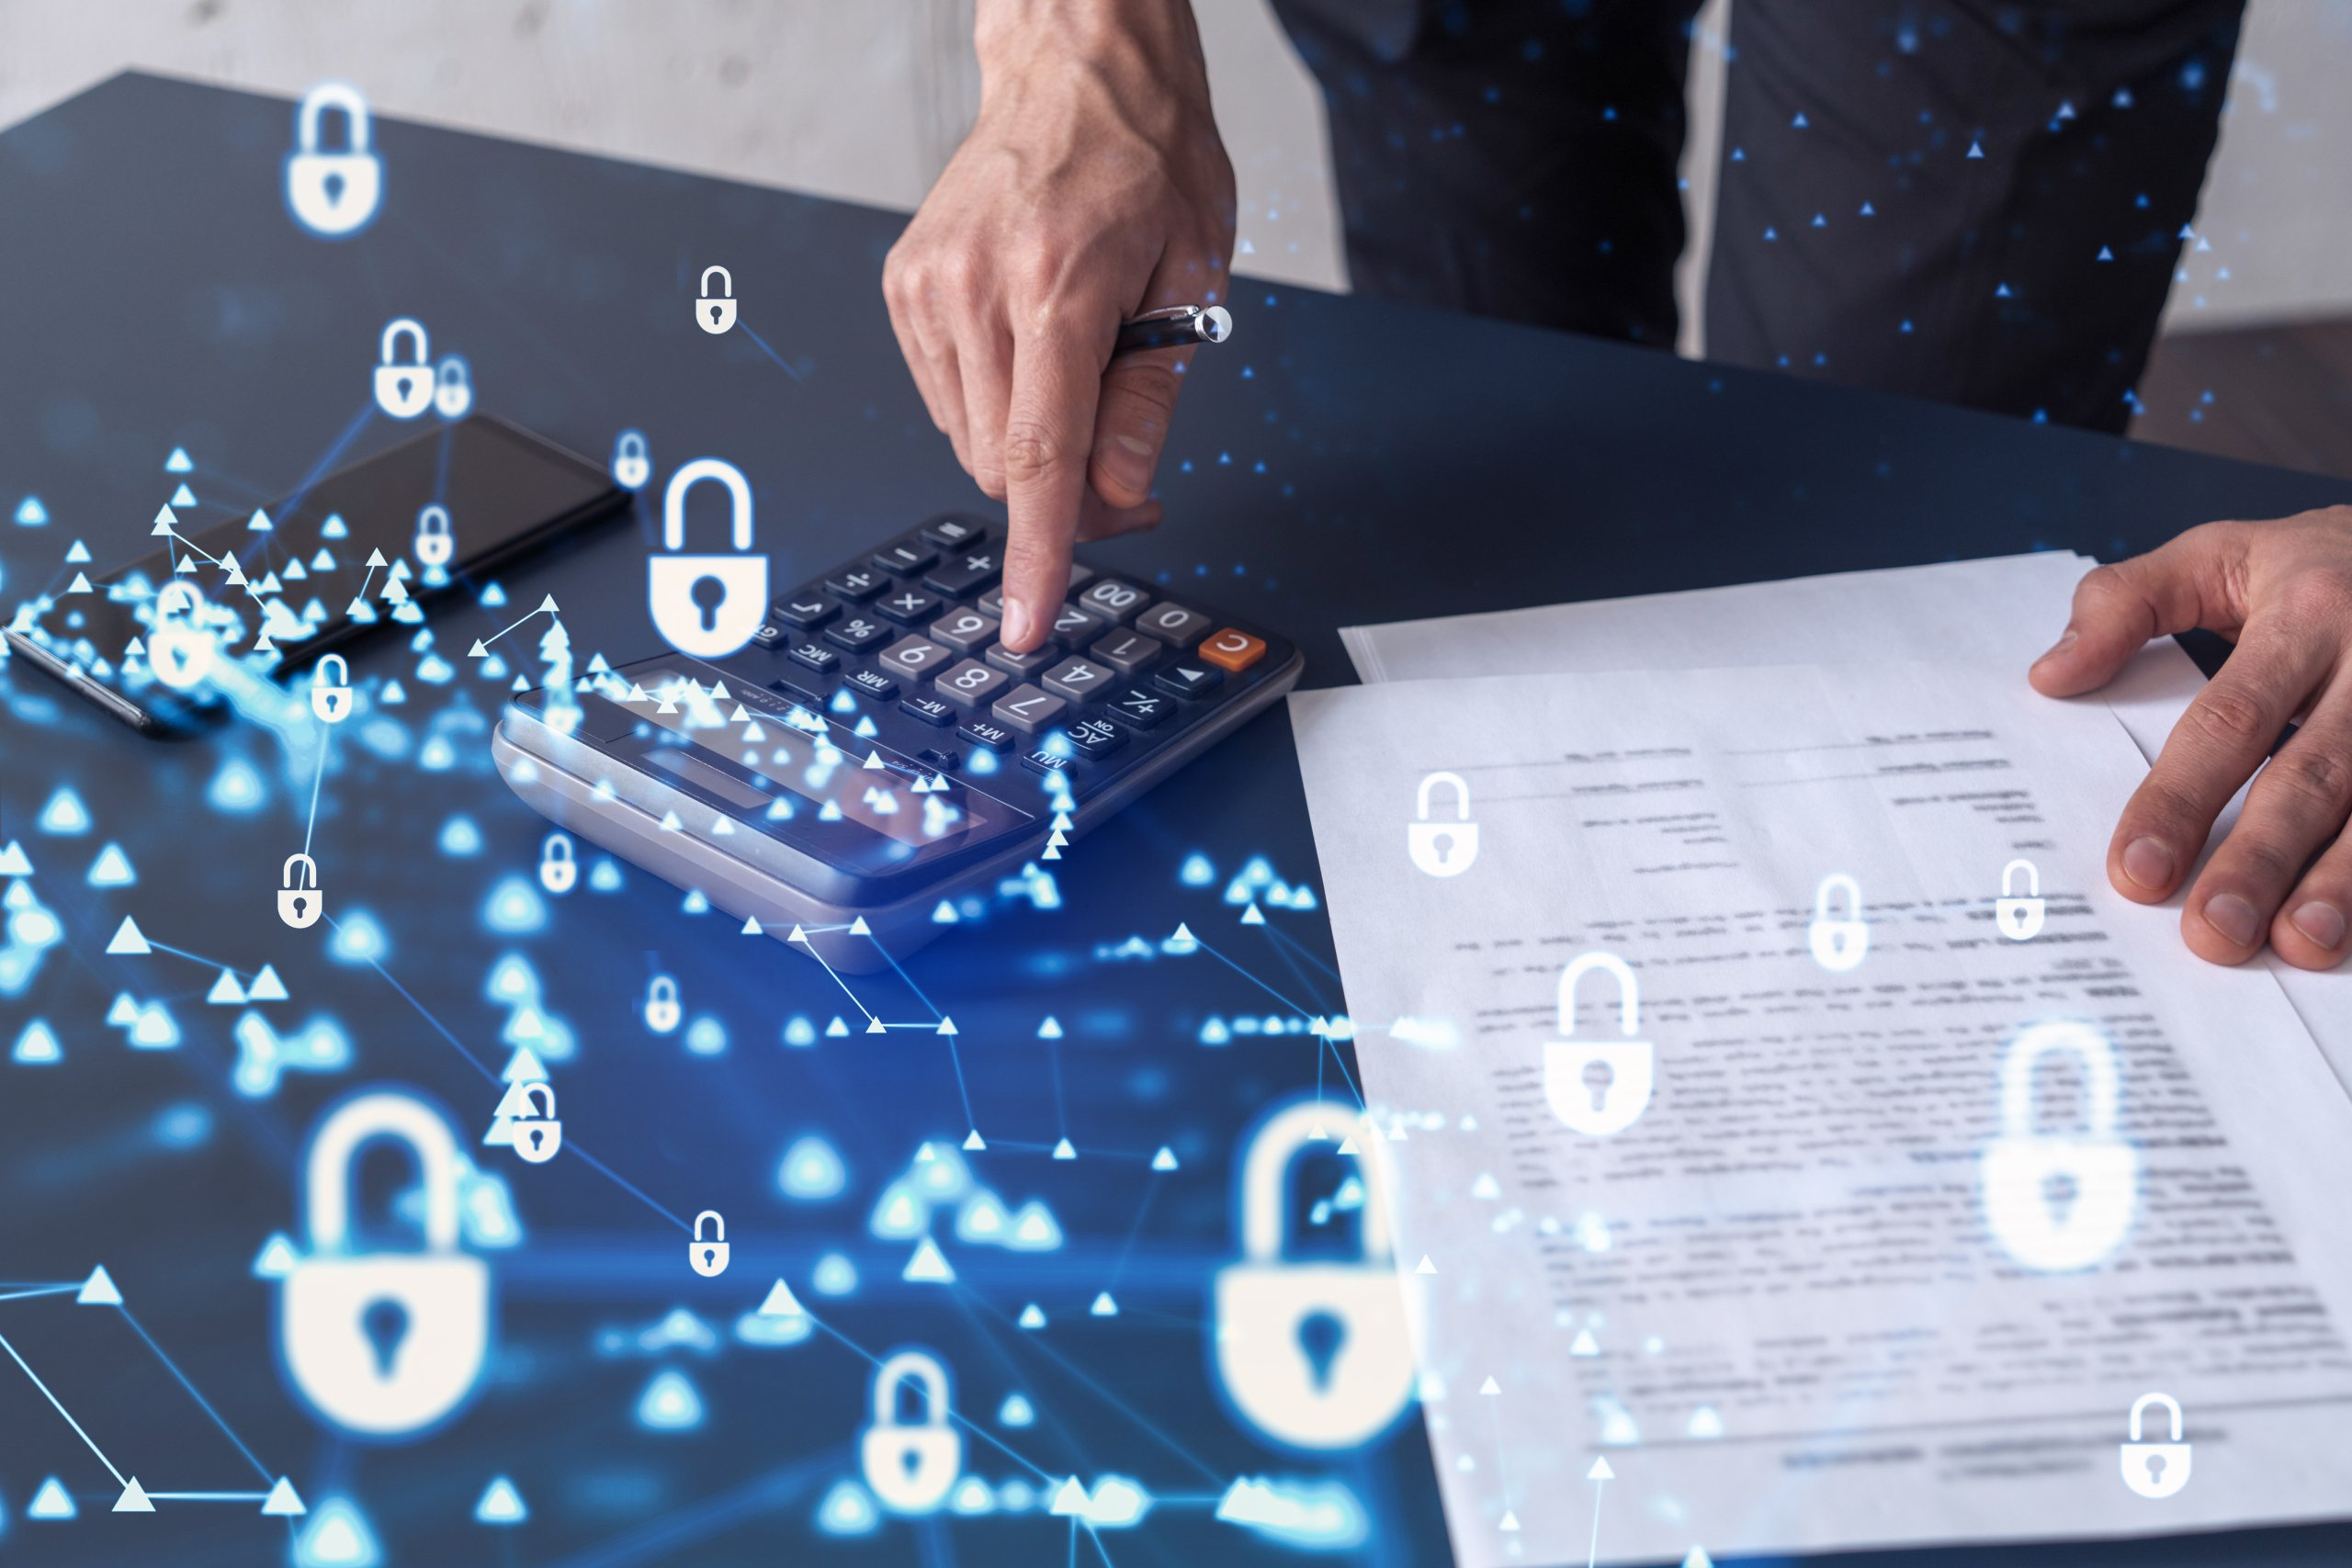 A businessman computing probability of risks in cyber security protection using calculator. Padlock Hologram icons over the working desk. Formal wear.